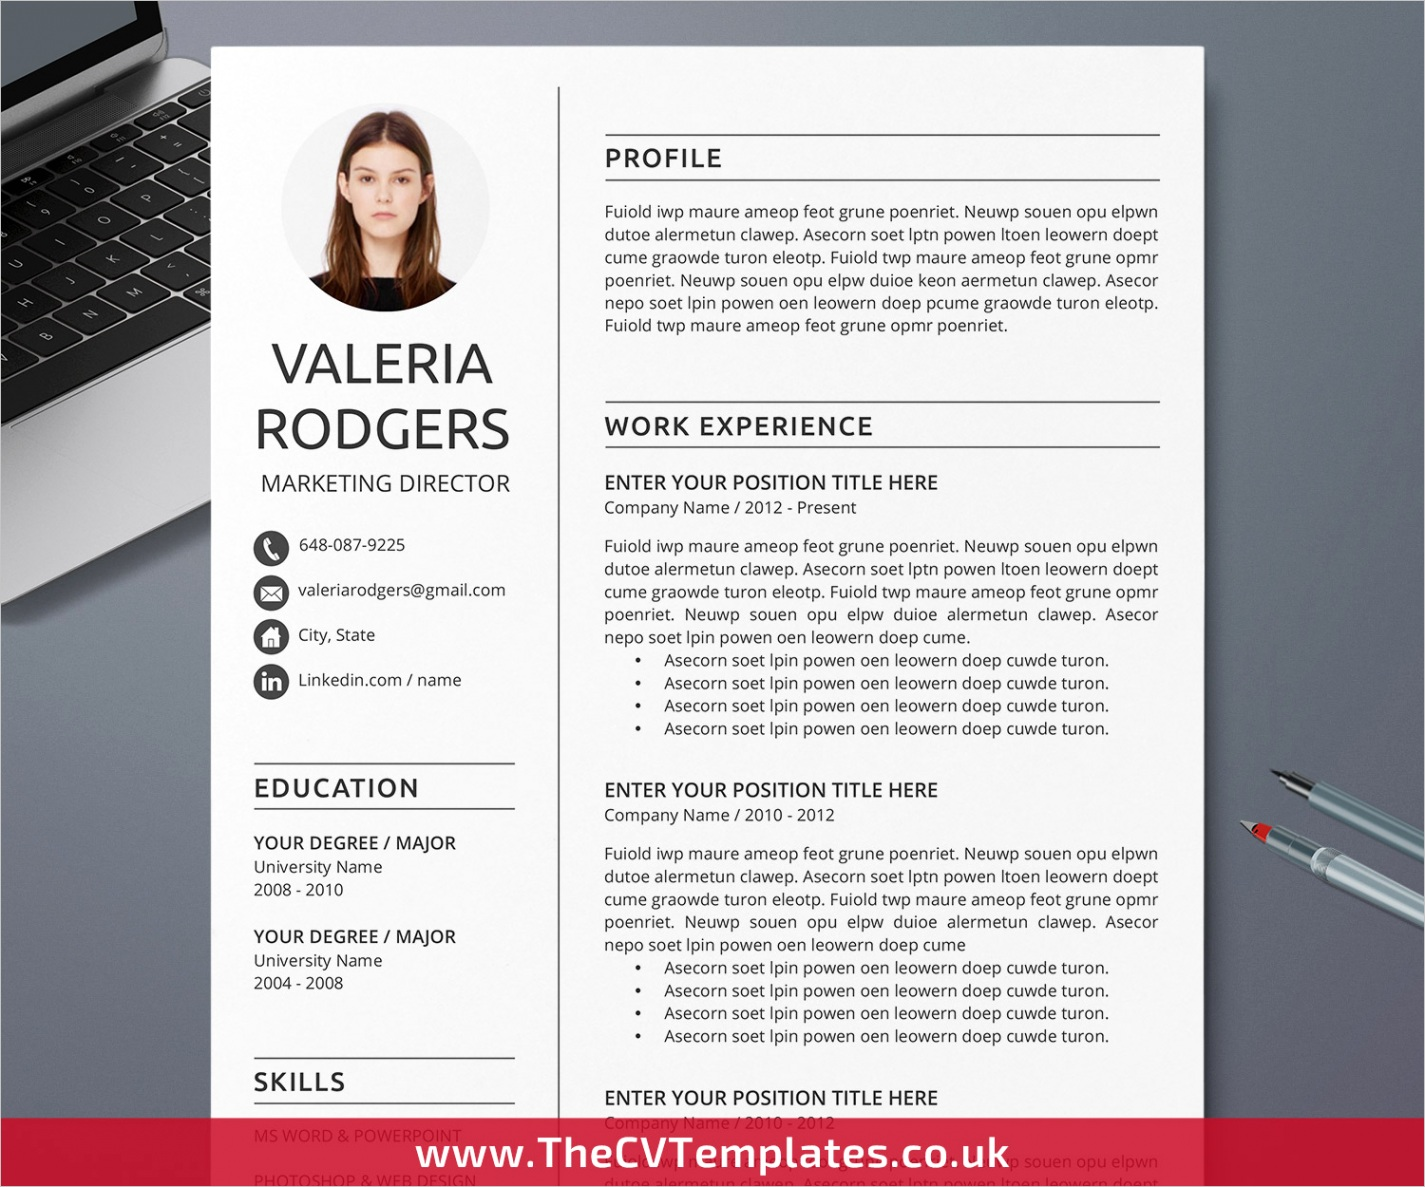 minimalist cv template for ms word cover letter simple resume professional resume modern resume creative resume clean resume template for job application instant cvuk 30